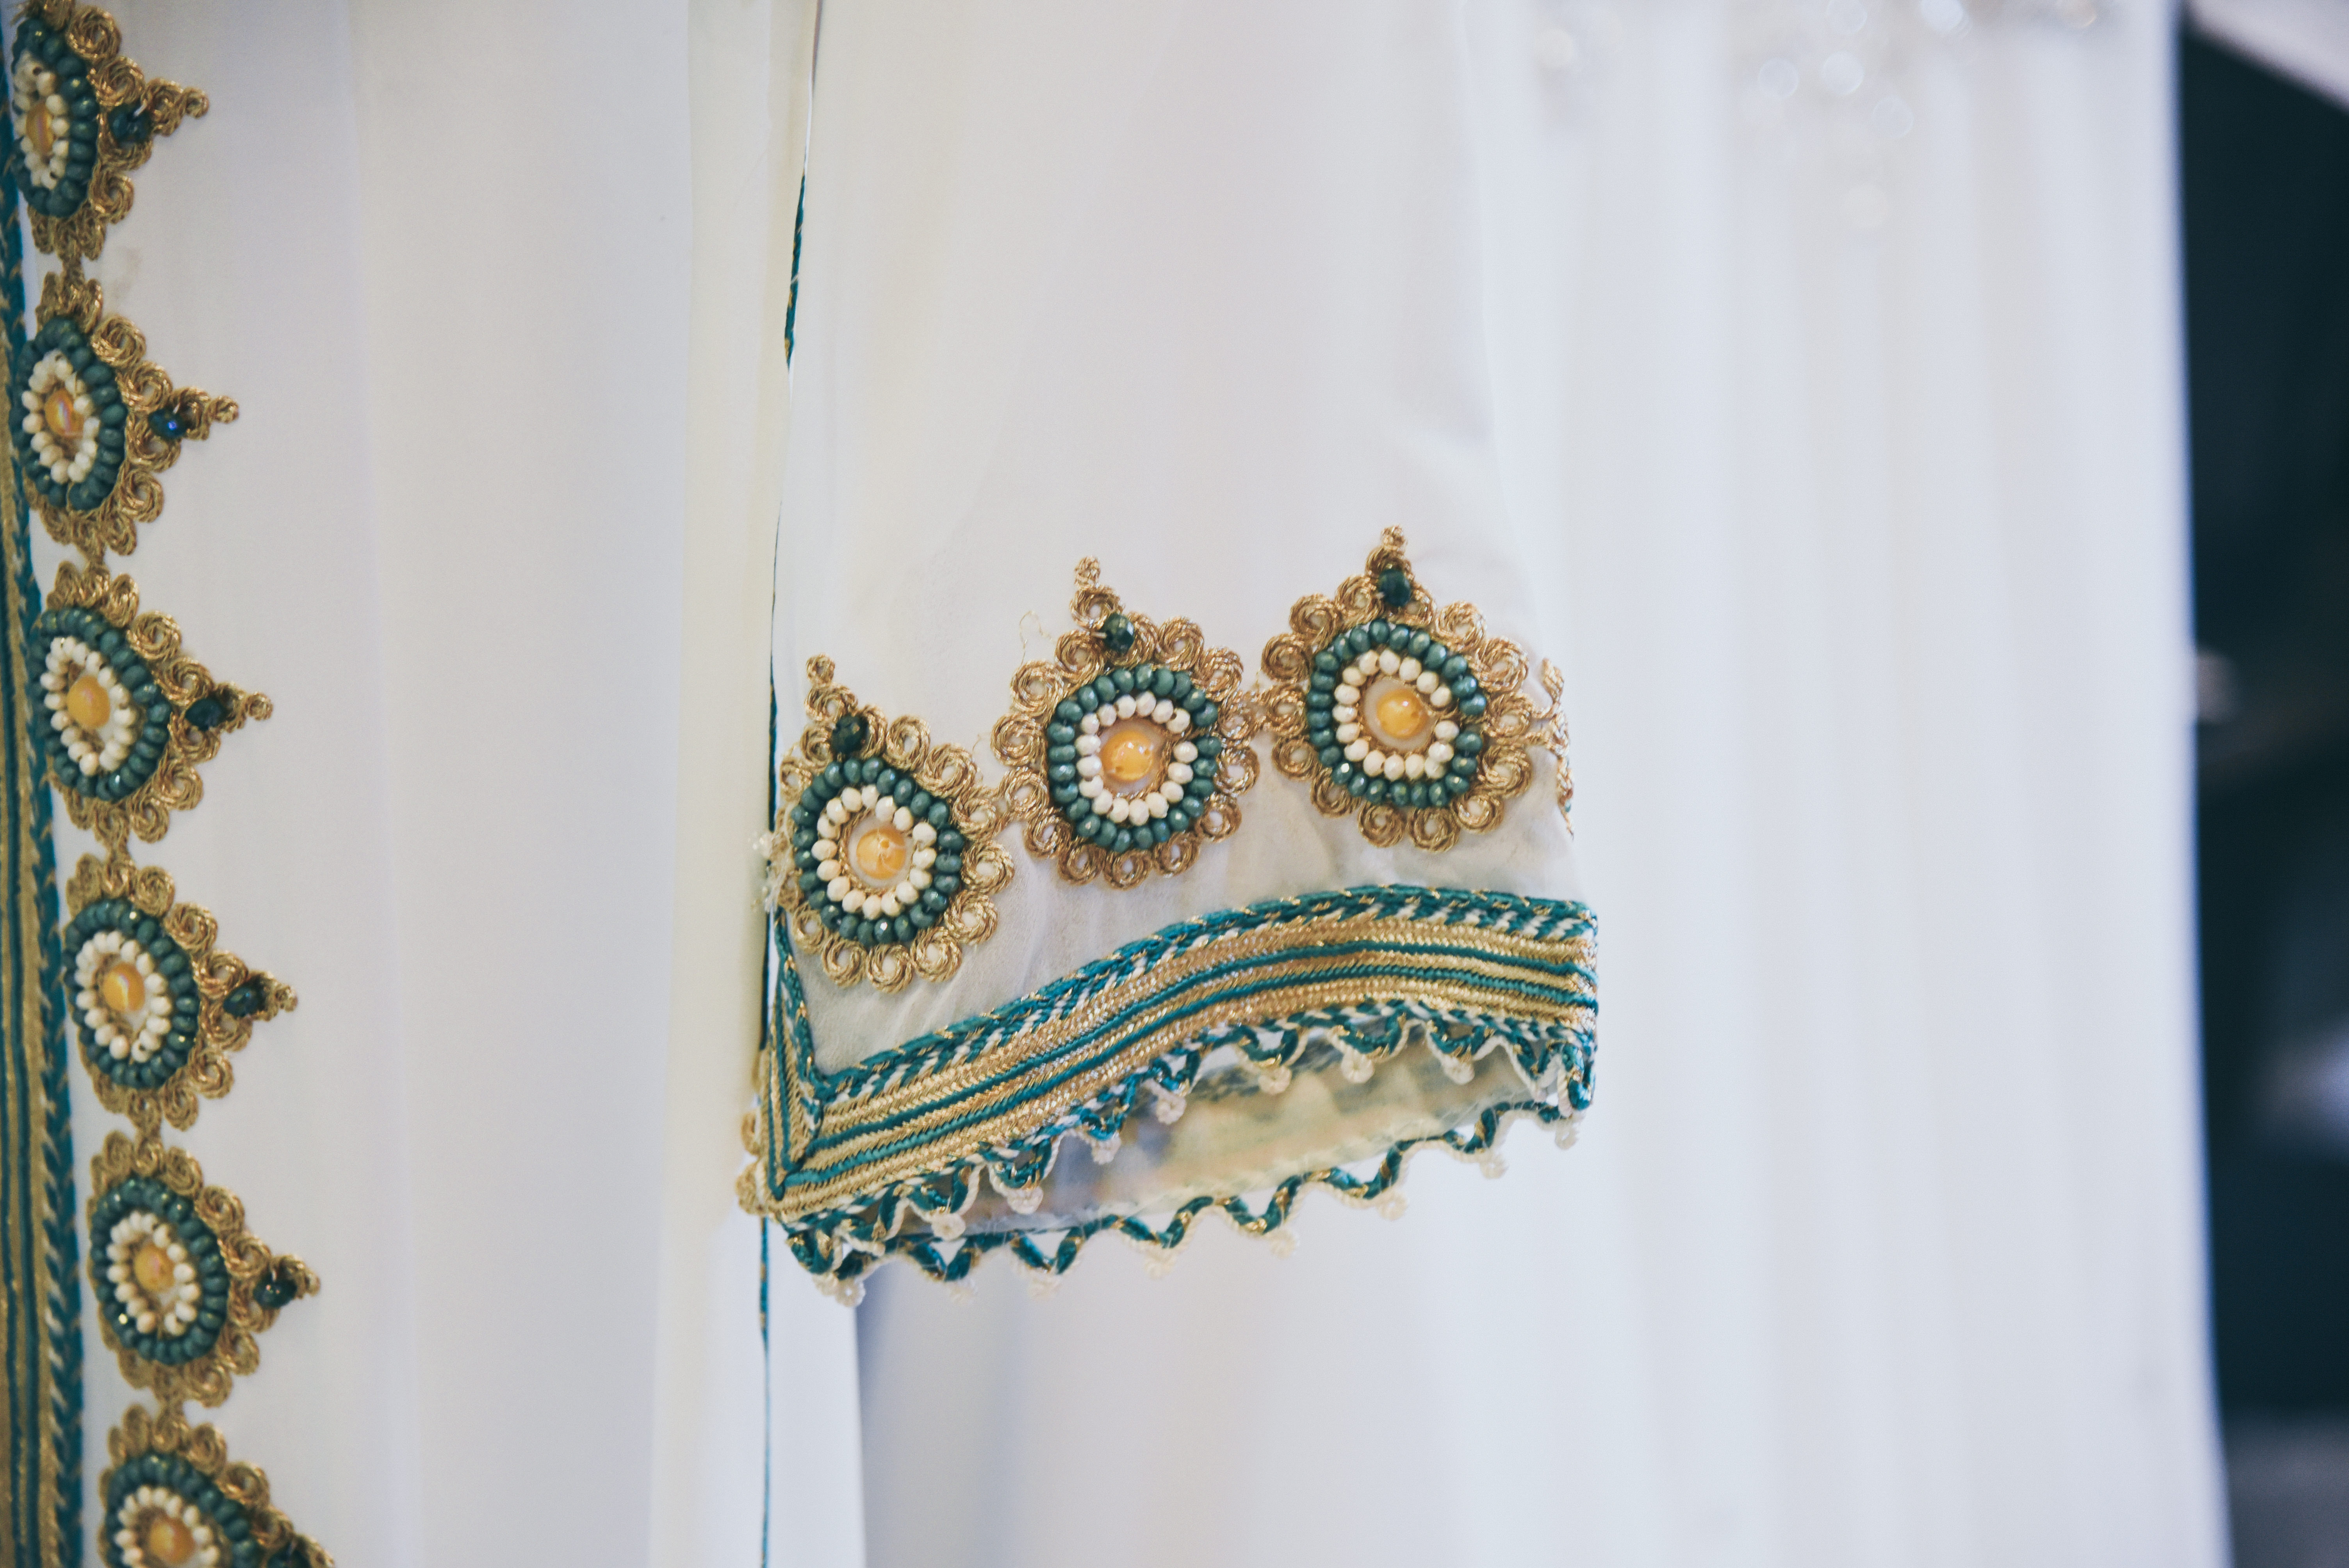 bride's moroccan wedding outfit in white, teal and gold